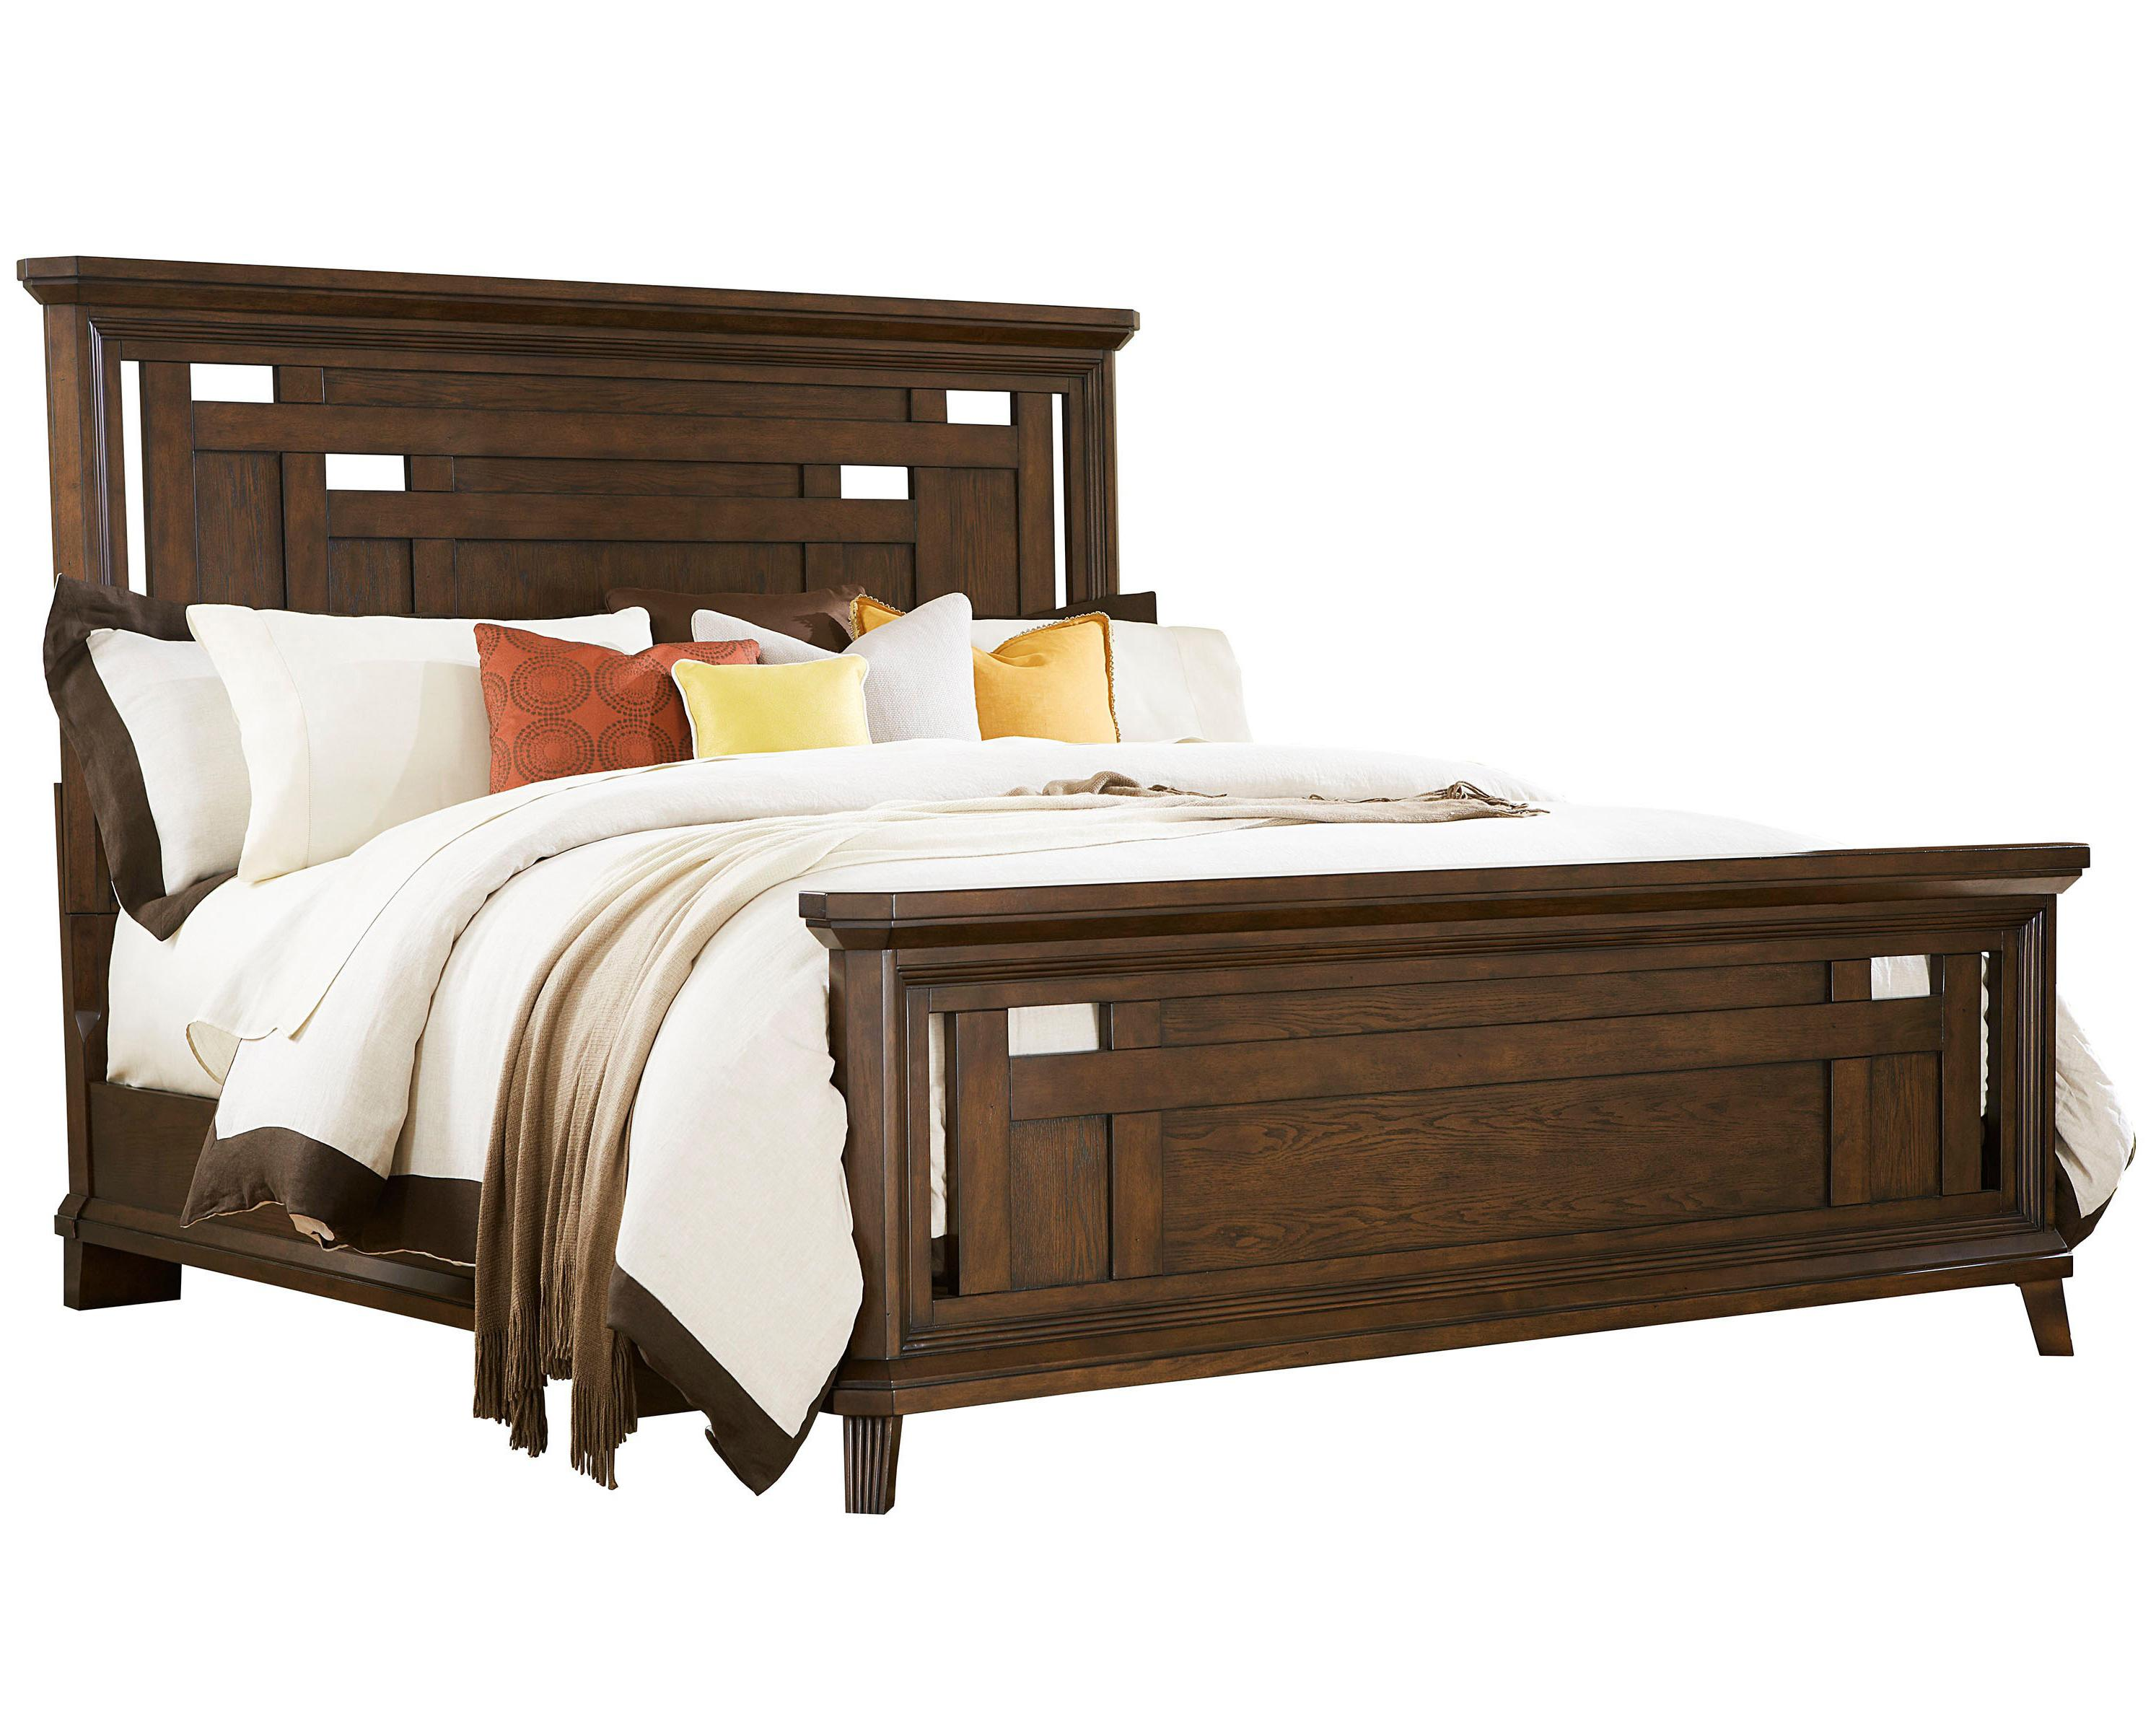 Broyhill Furniture Estes Park King Panel Bed - Item Number: 4364-254+255+450